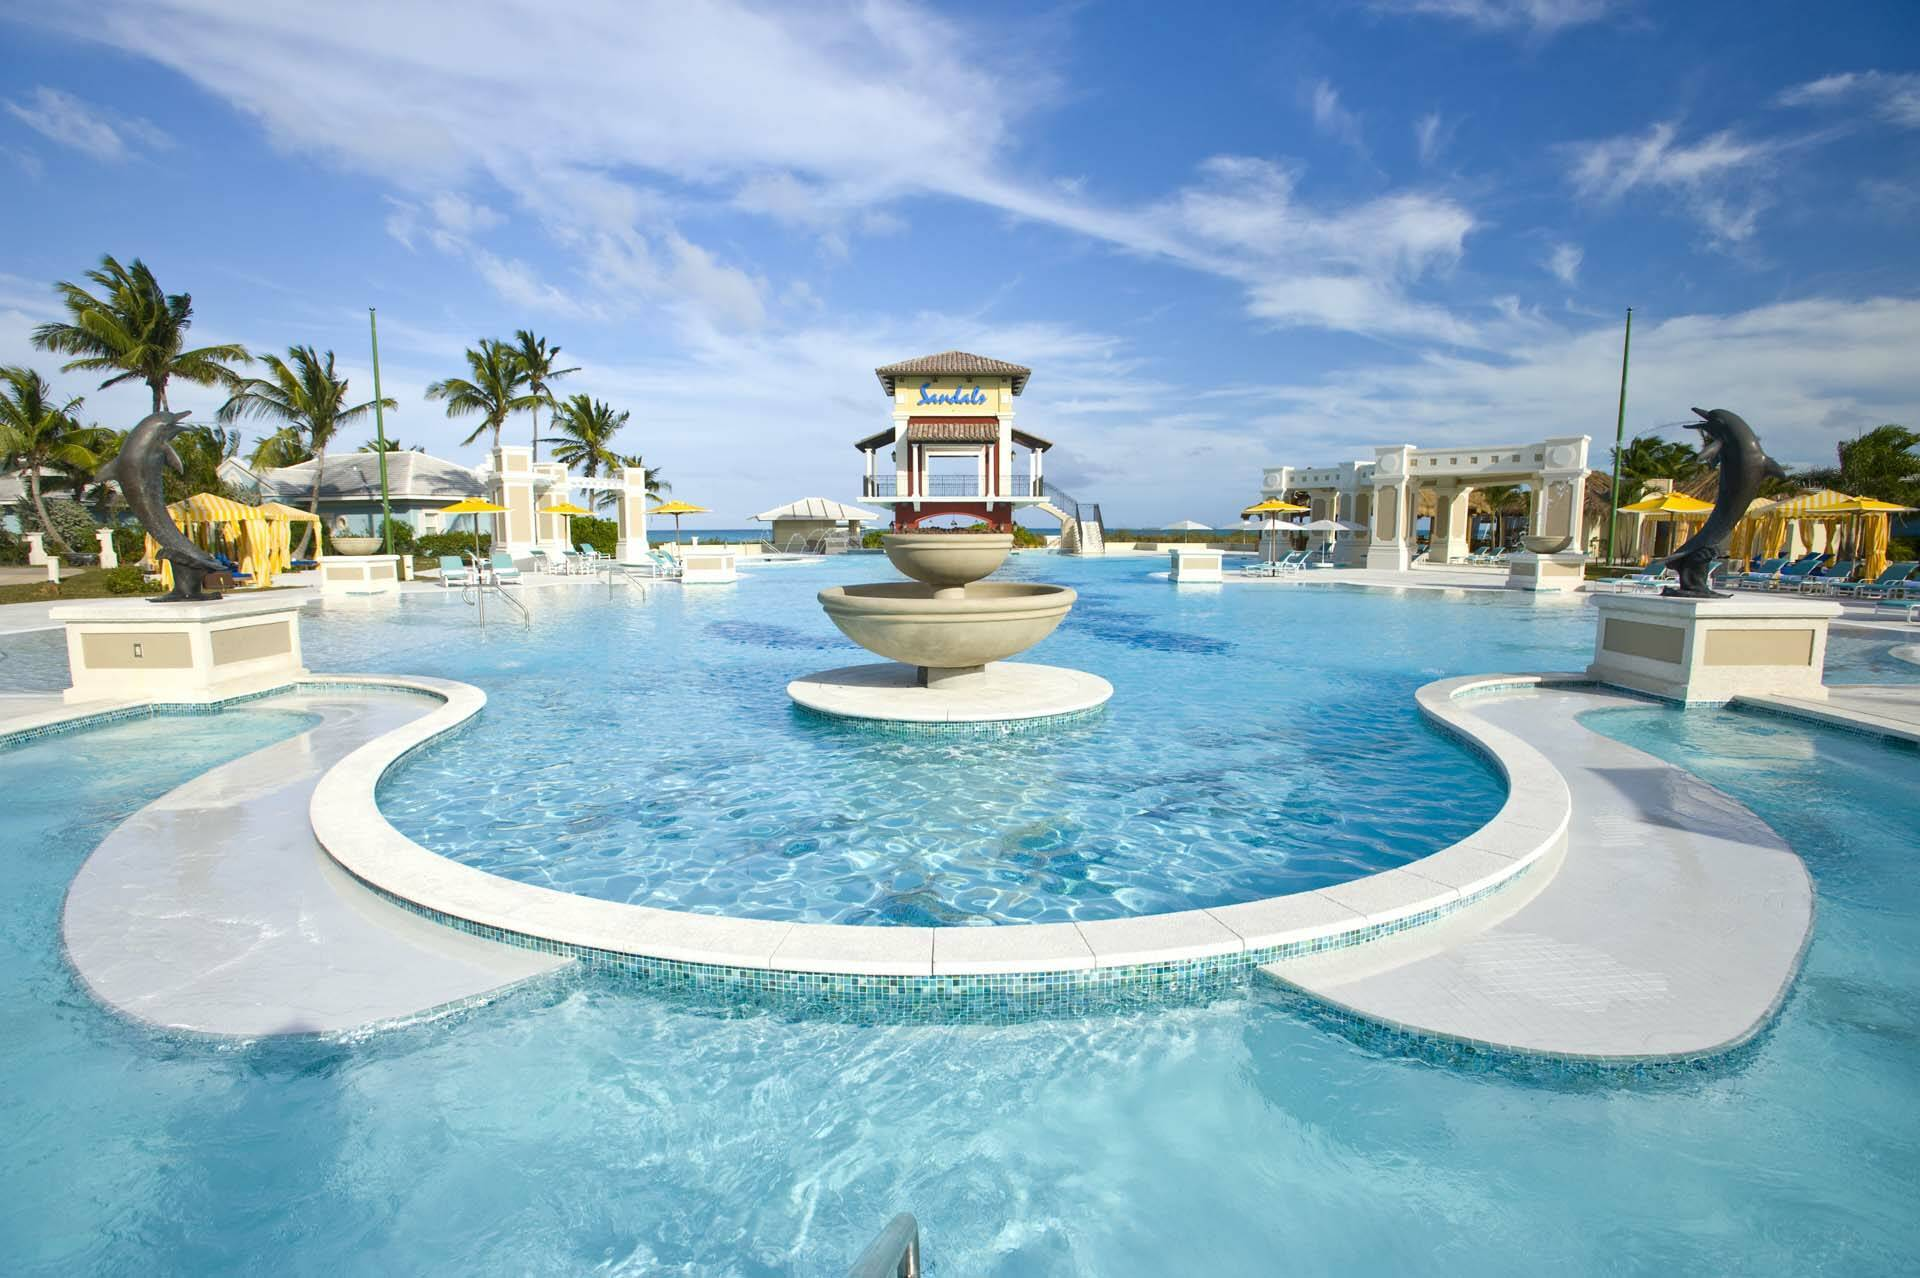 Sandals Emerald Bay Exuma Bahamas Piscine